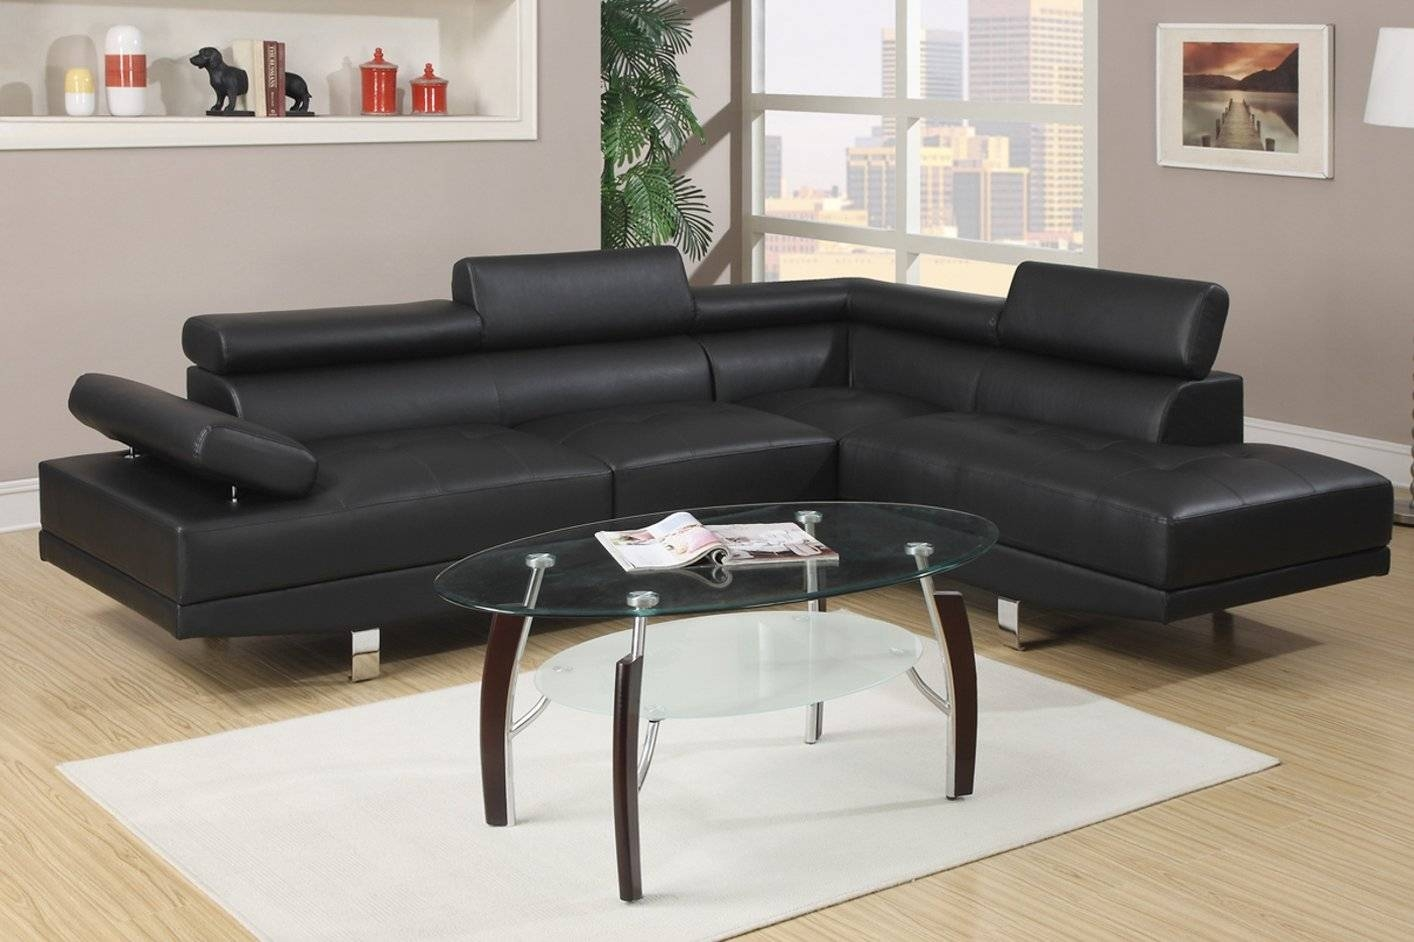 Sofas Center : Black Leather Sectional Sofa With Chaise Dobson inside Dobson Sectional Sofa (Image 17 of 30)